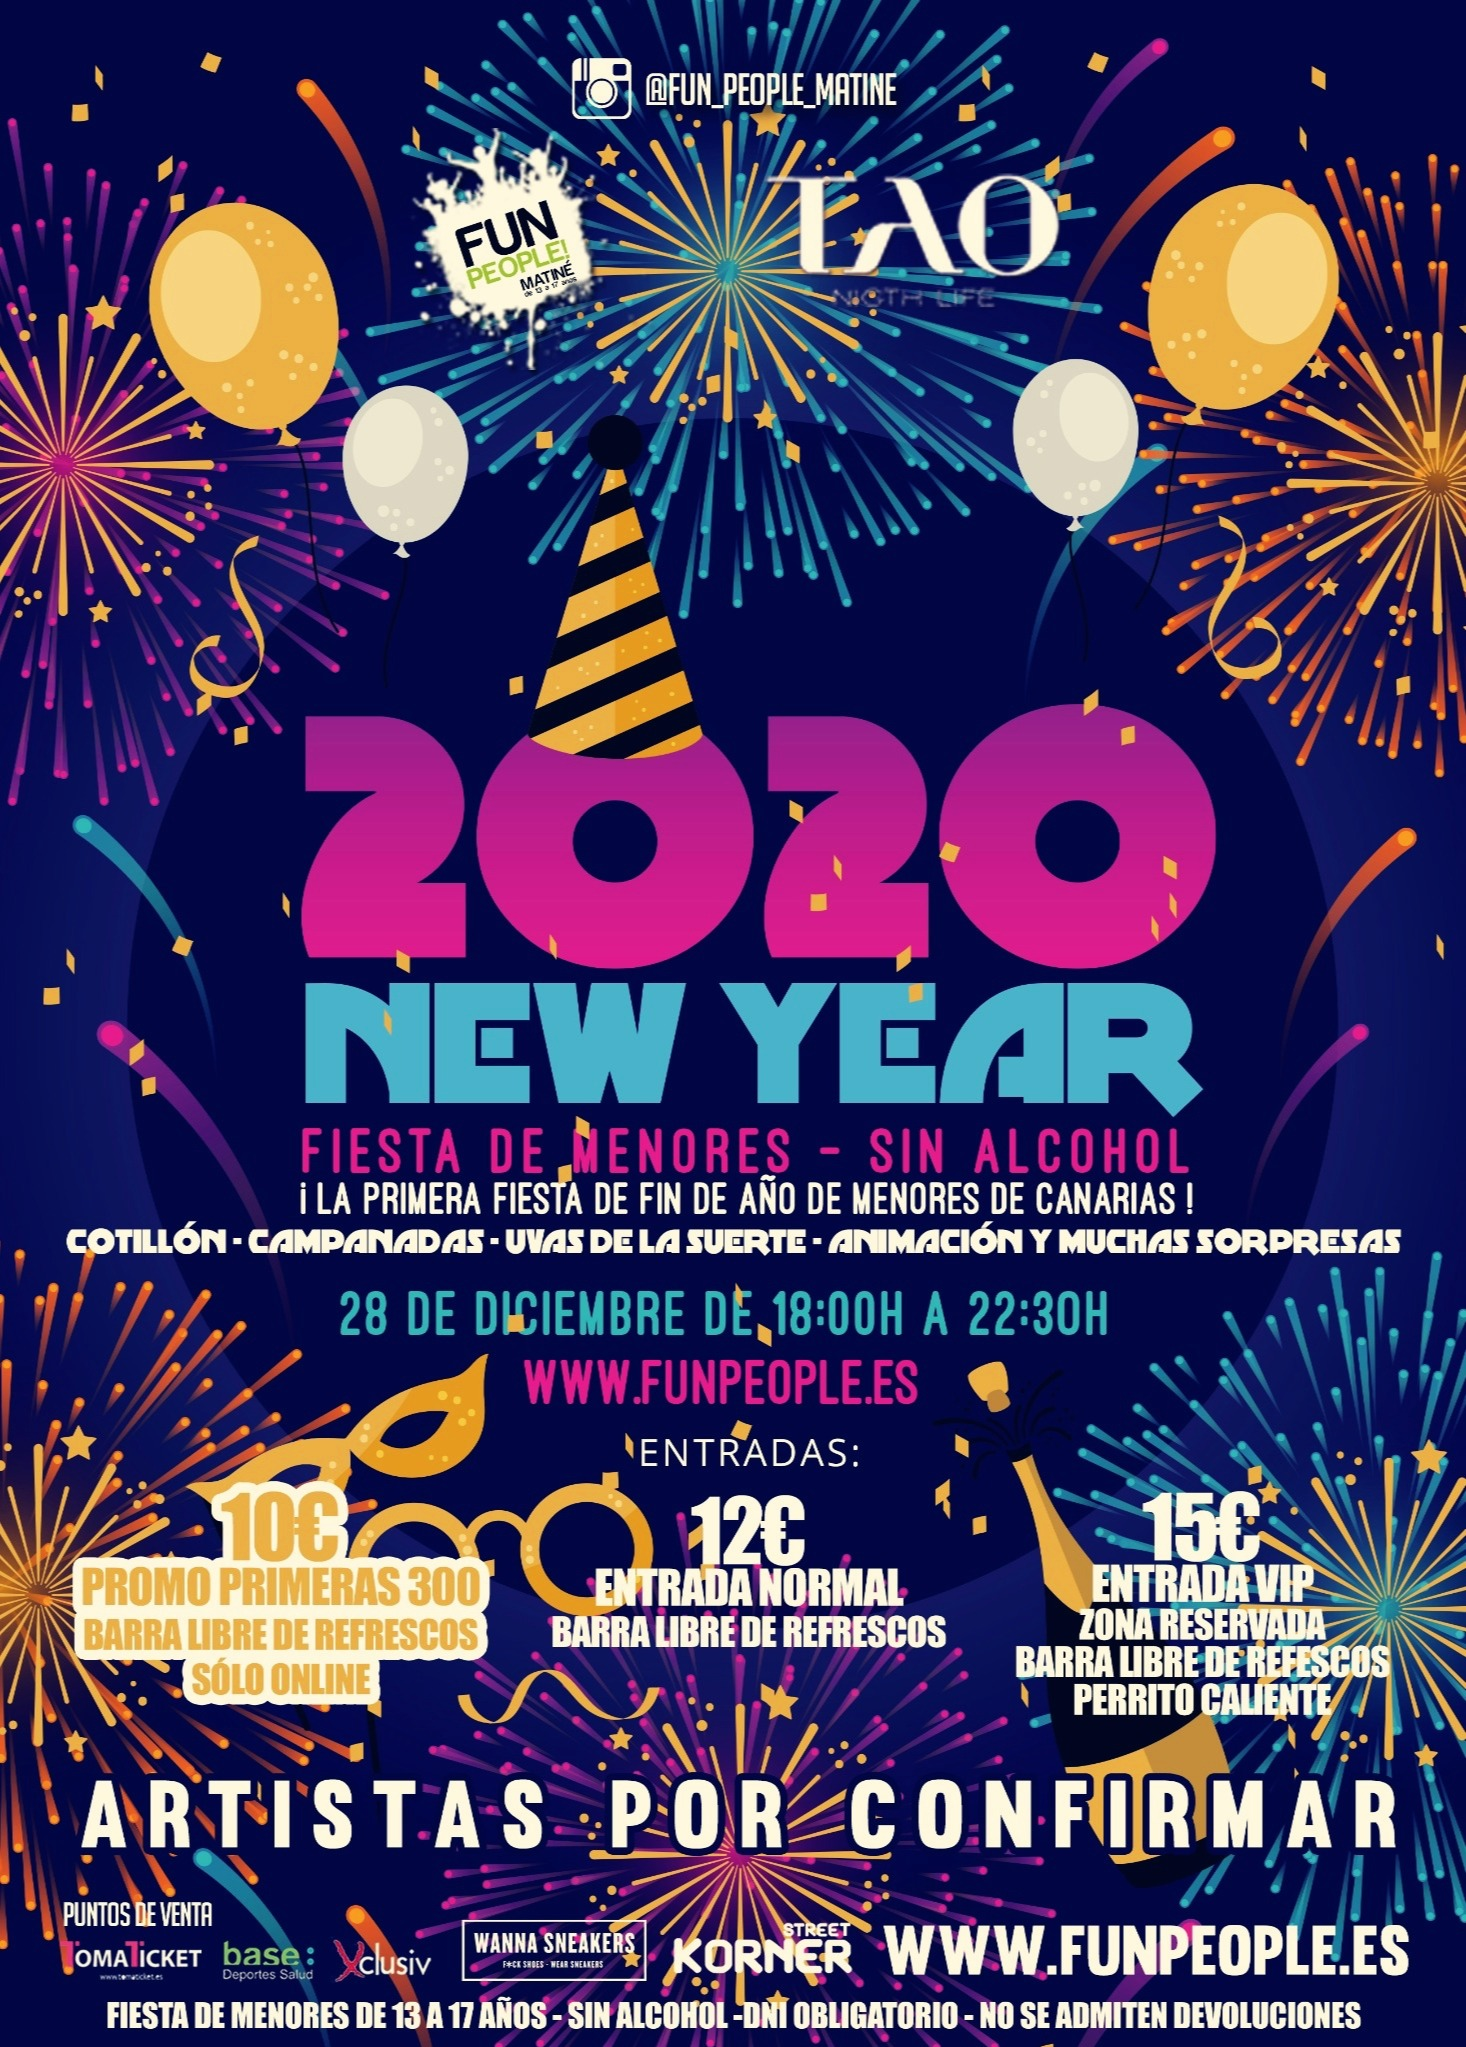 New Year 2020 (fiesta de menores)  - Club Fun People